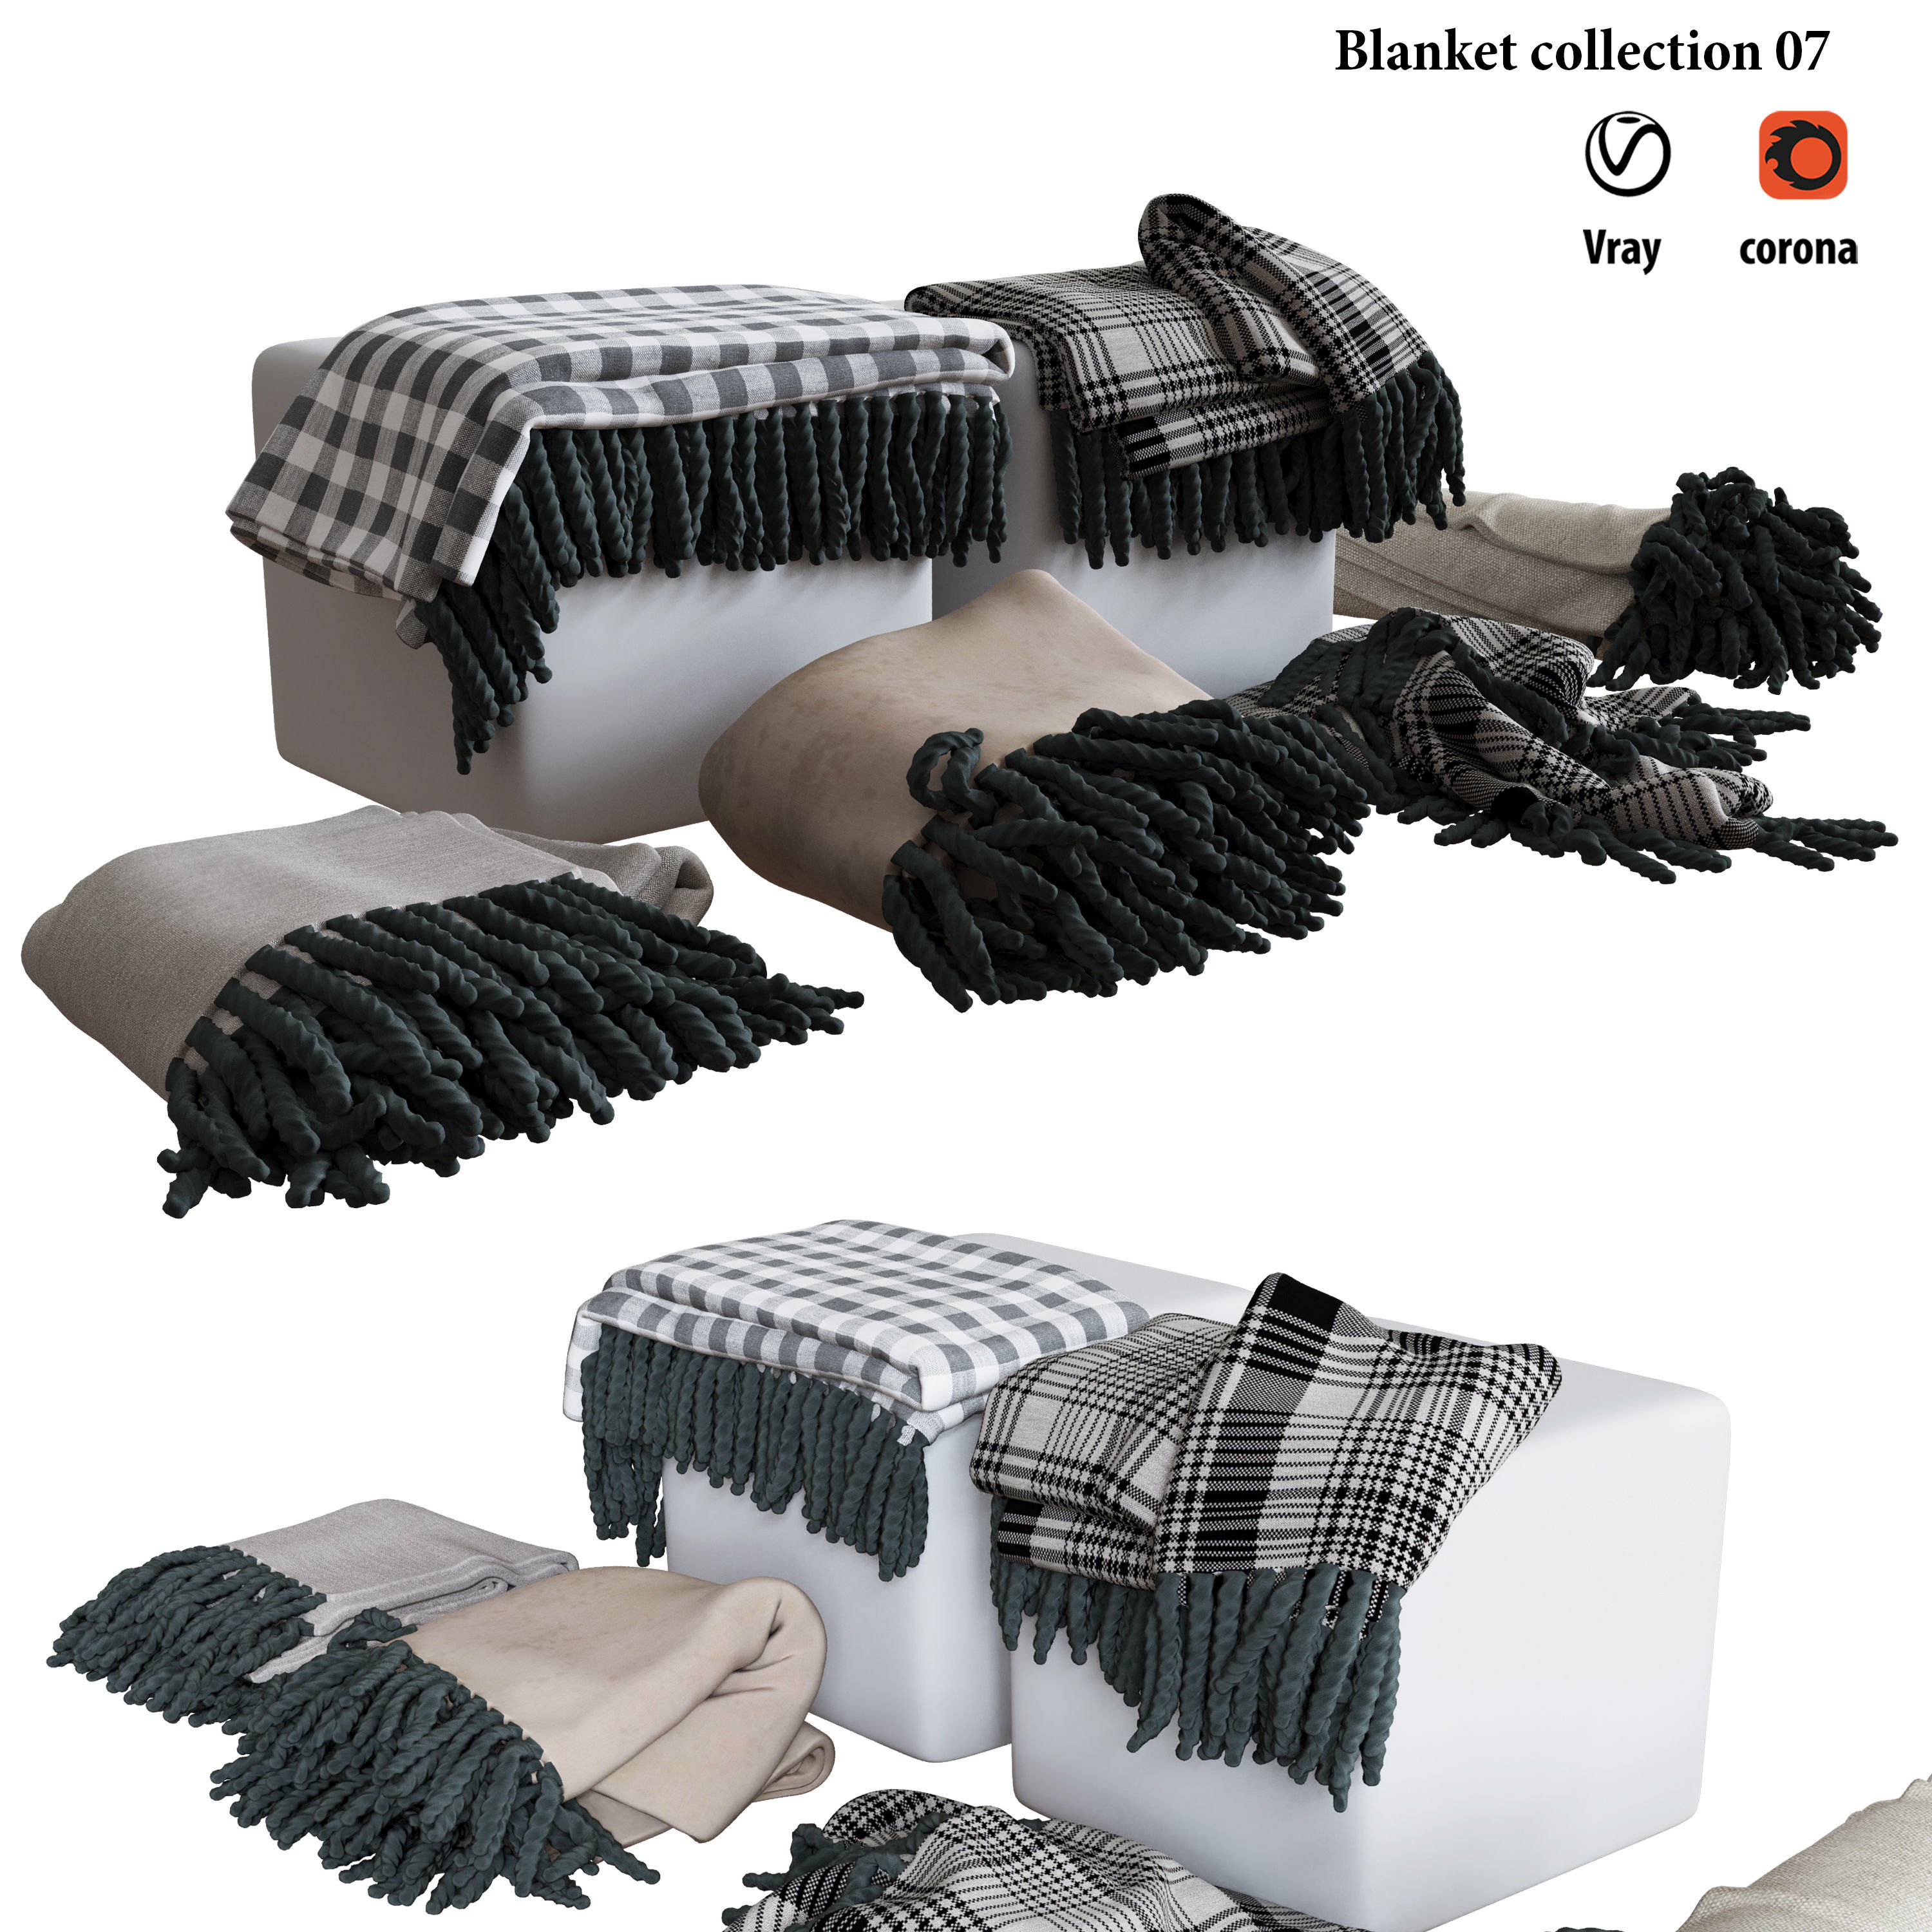 Blanket collection 07